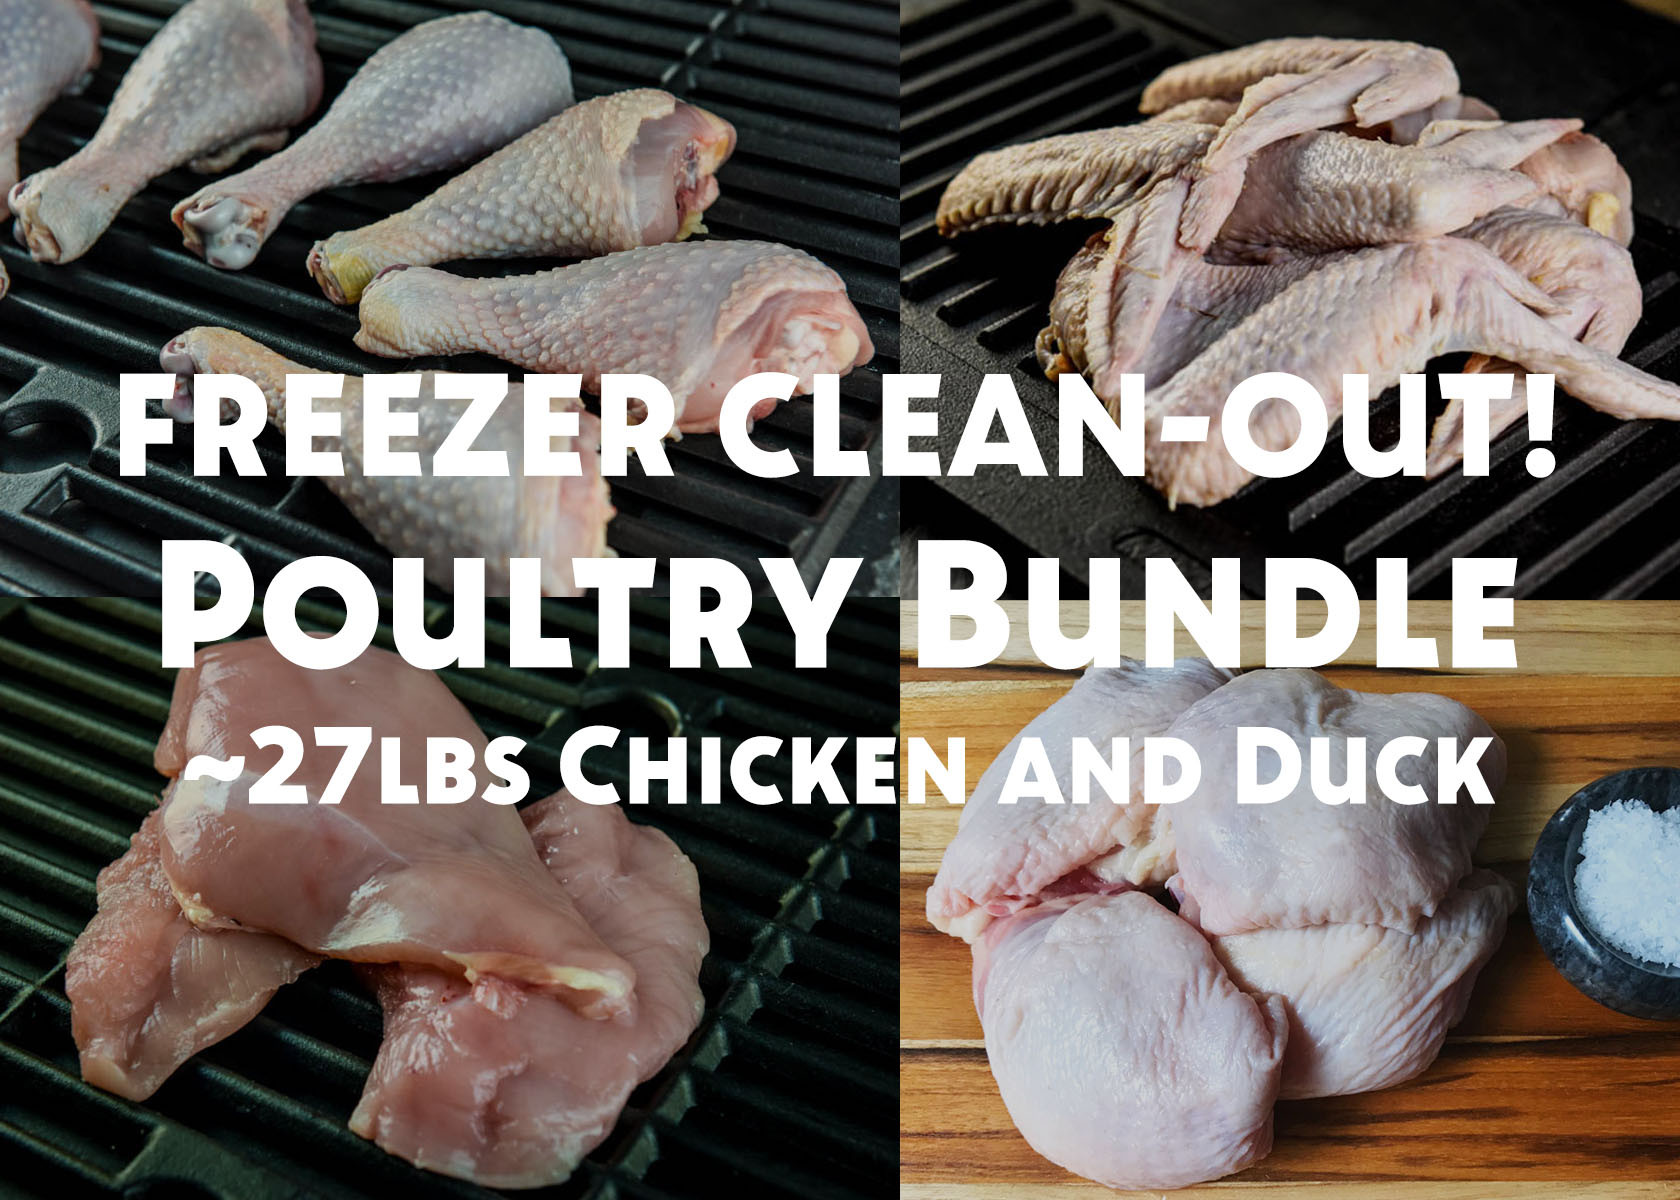 White Oak Pastures Poultry Bundle